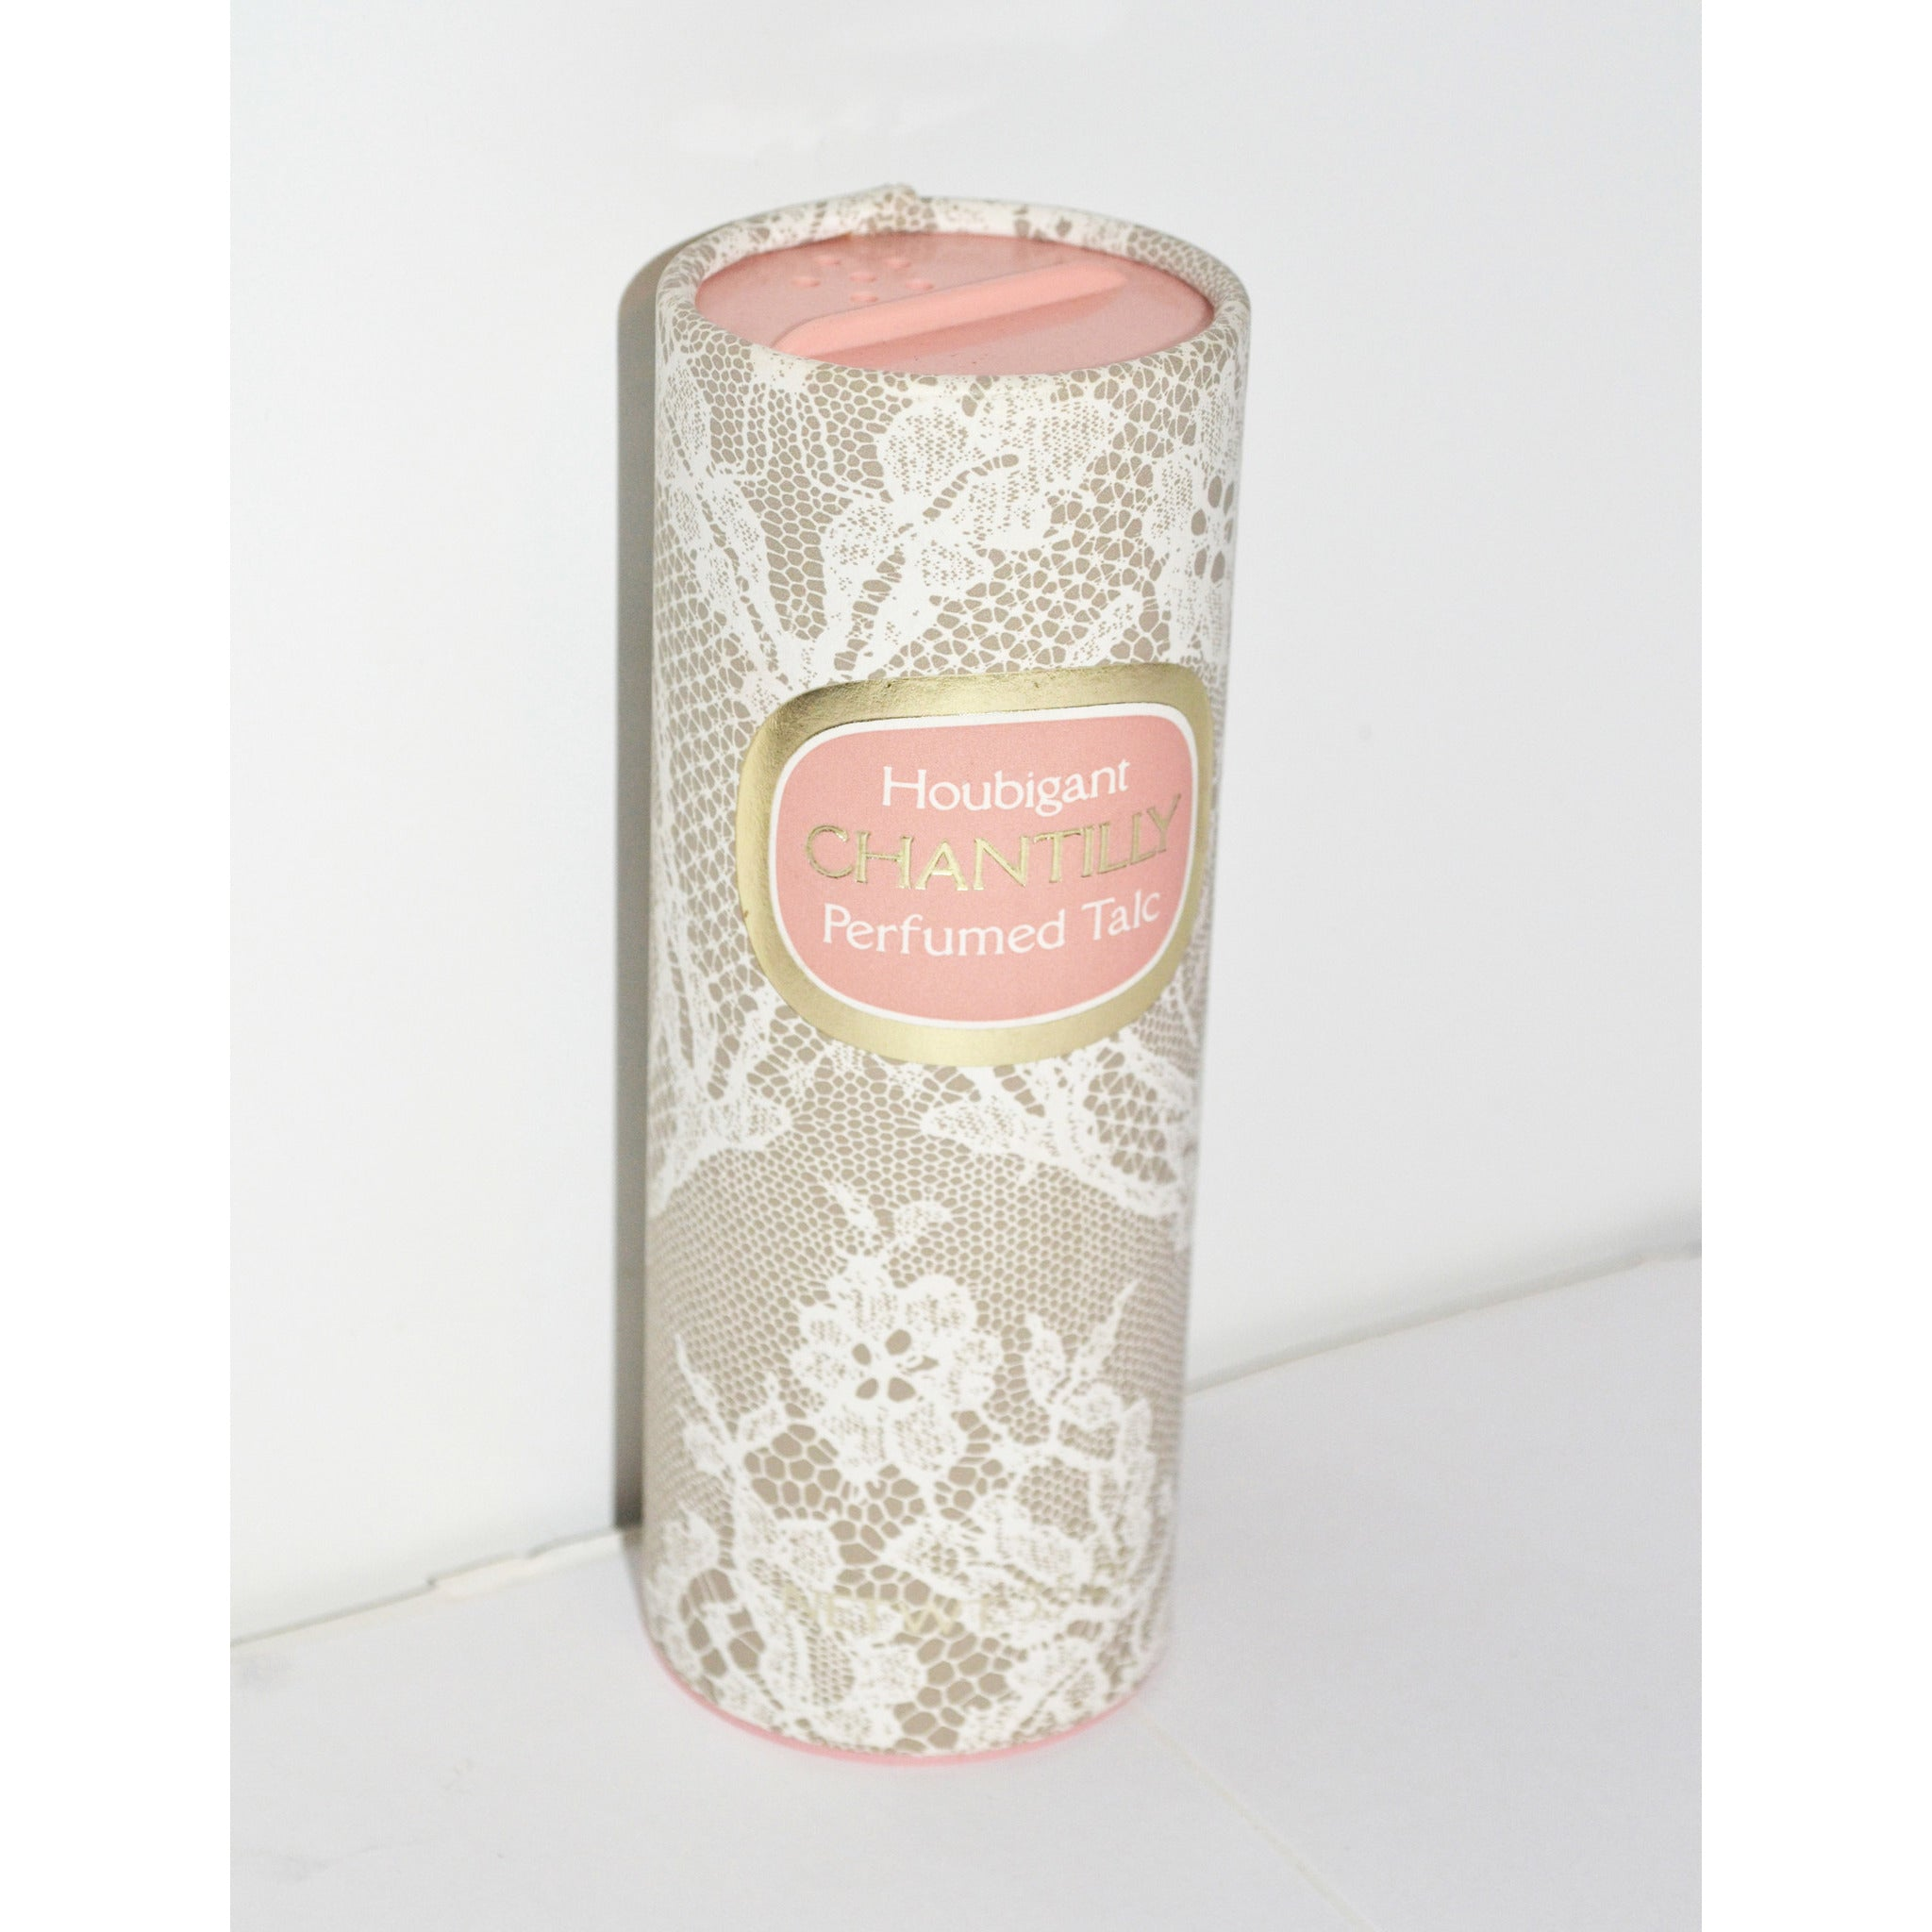 Vintage Chantilly Perfumed Talc By Houbigant